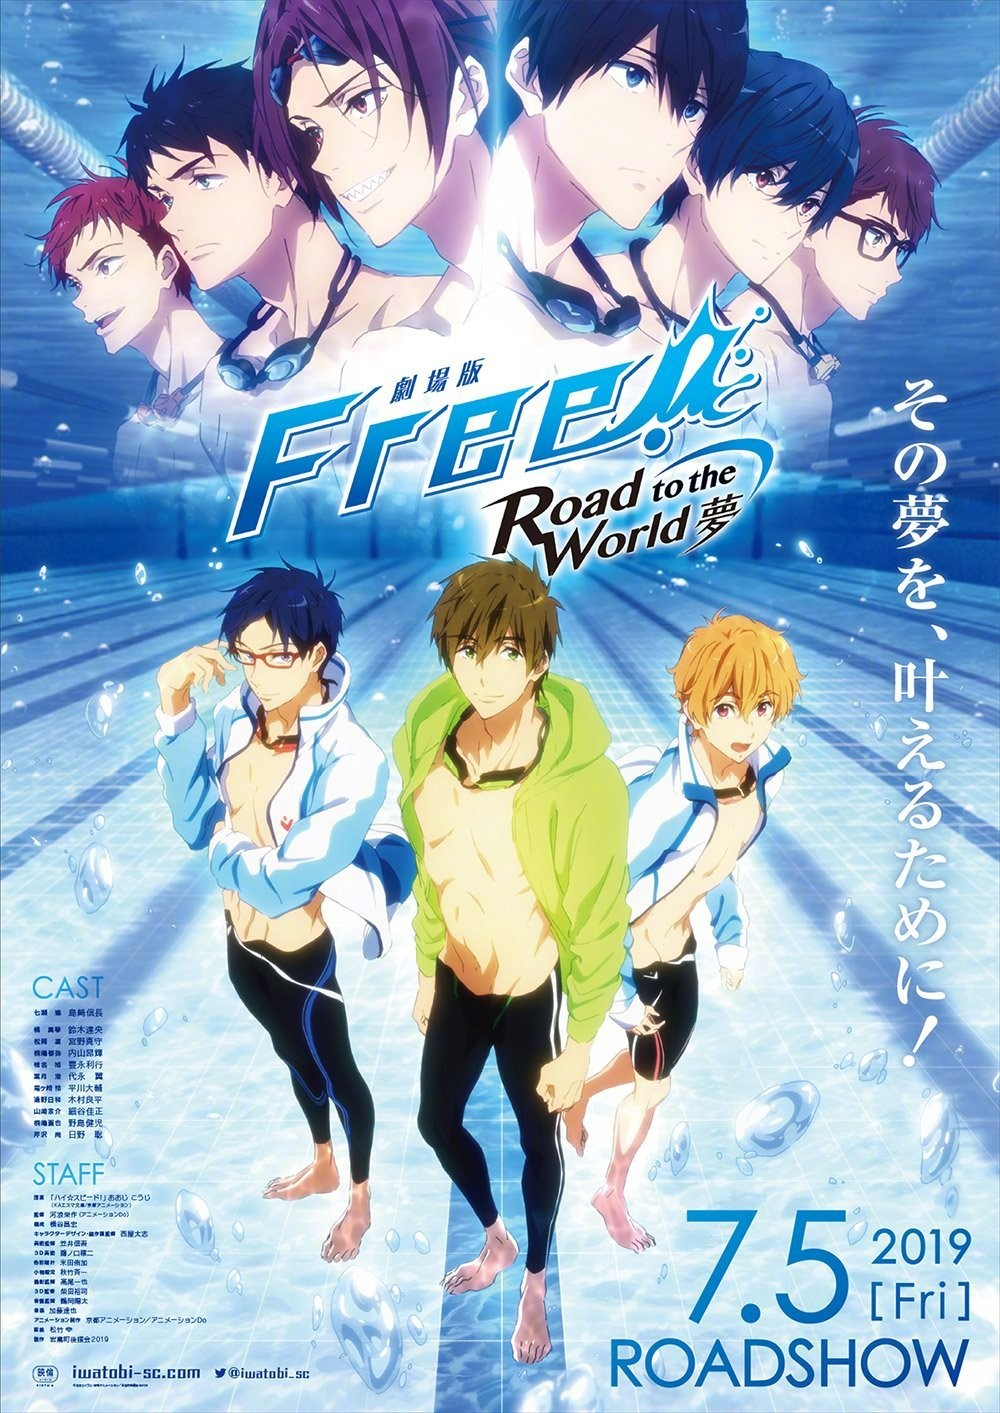 劇場版 Free!-Road to the World-夢 剧场版 Free!-Road to the World-梦